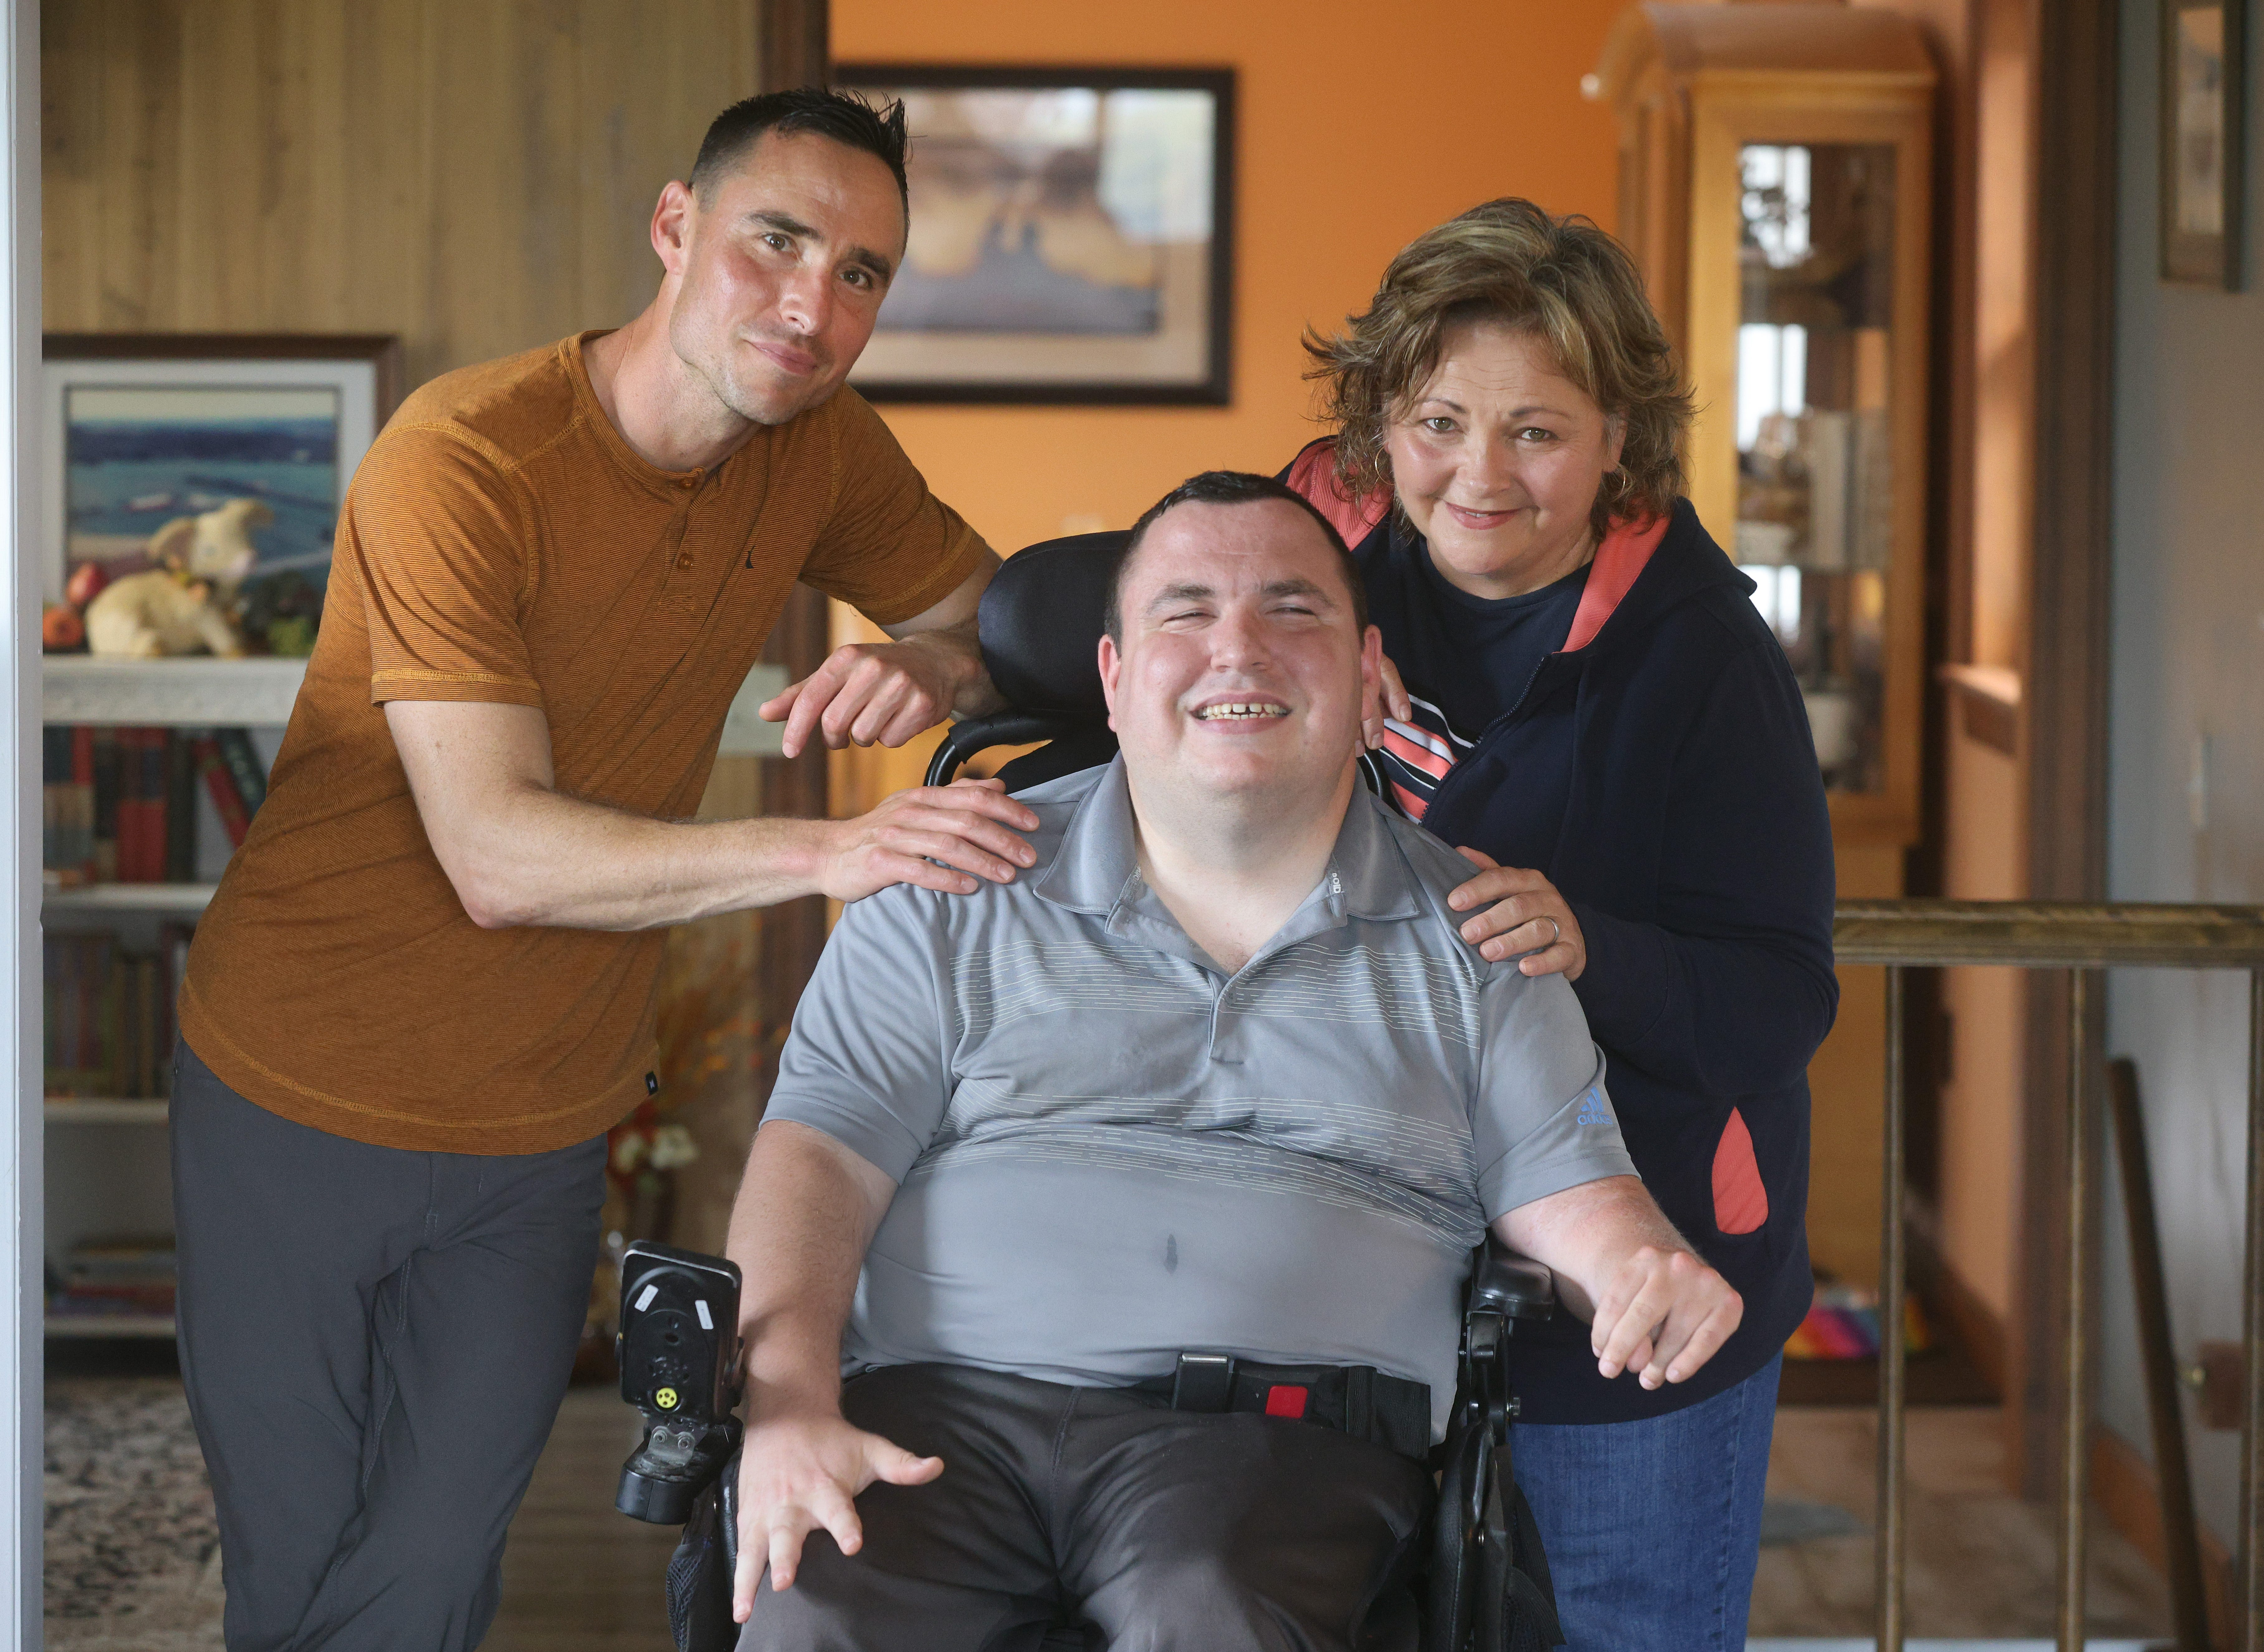 Joe Slomba has cerebral palsy and lives at home with his family. His mother Nancy and twin brother Ben split time as his paid caregivers but Medicaid only allows for $12.50 an hour for that care. Jamie Germando/Rochester Democrat & Chronicle